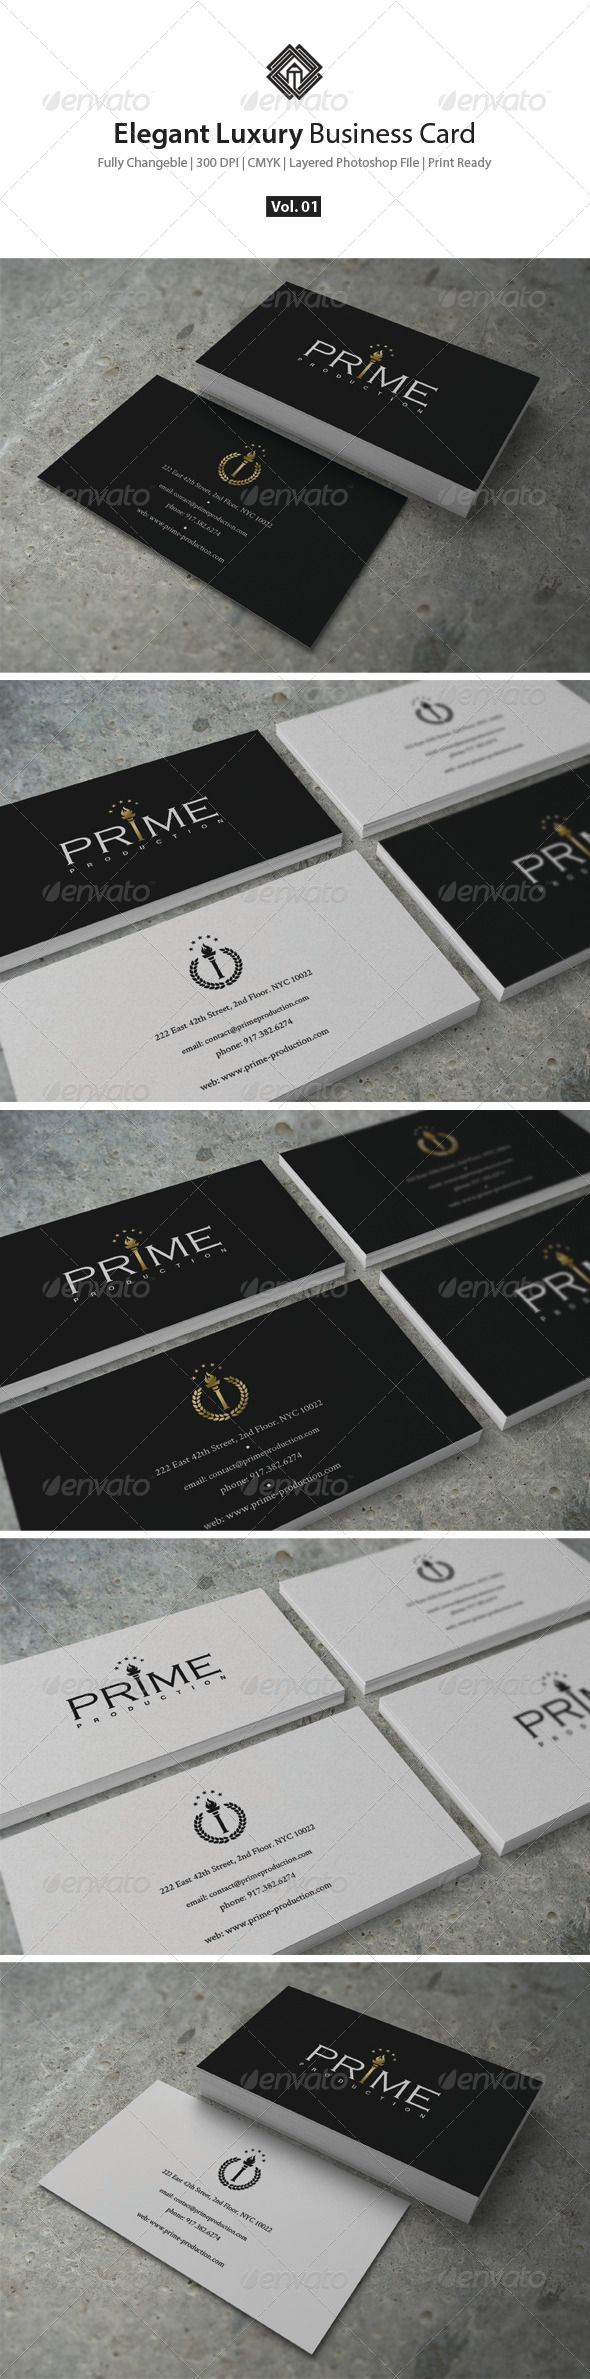 elegant luxury business card template psd buy and download